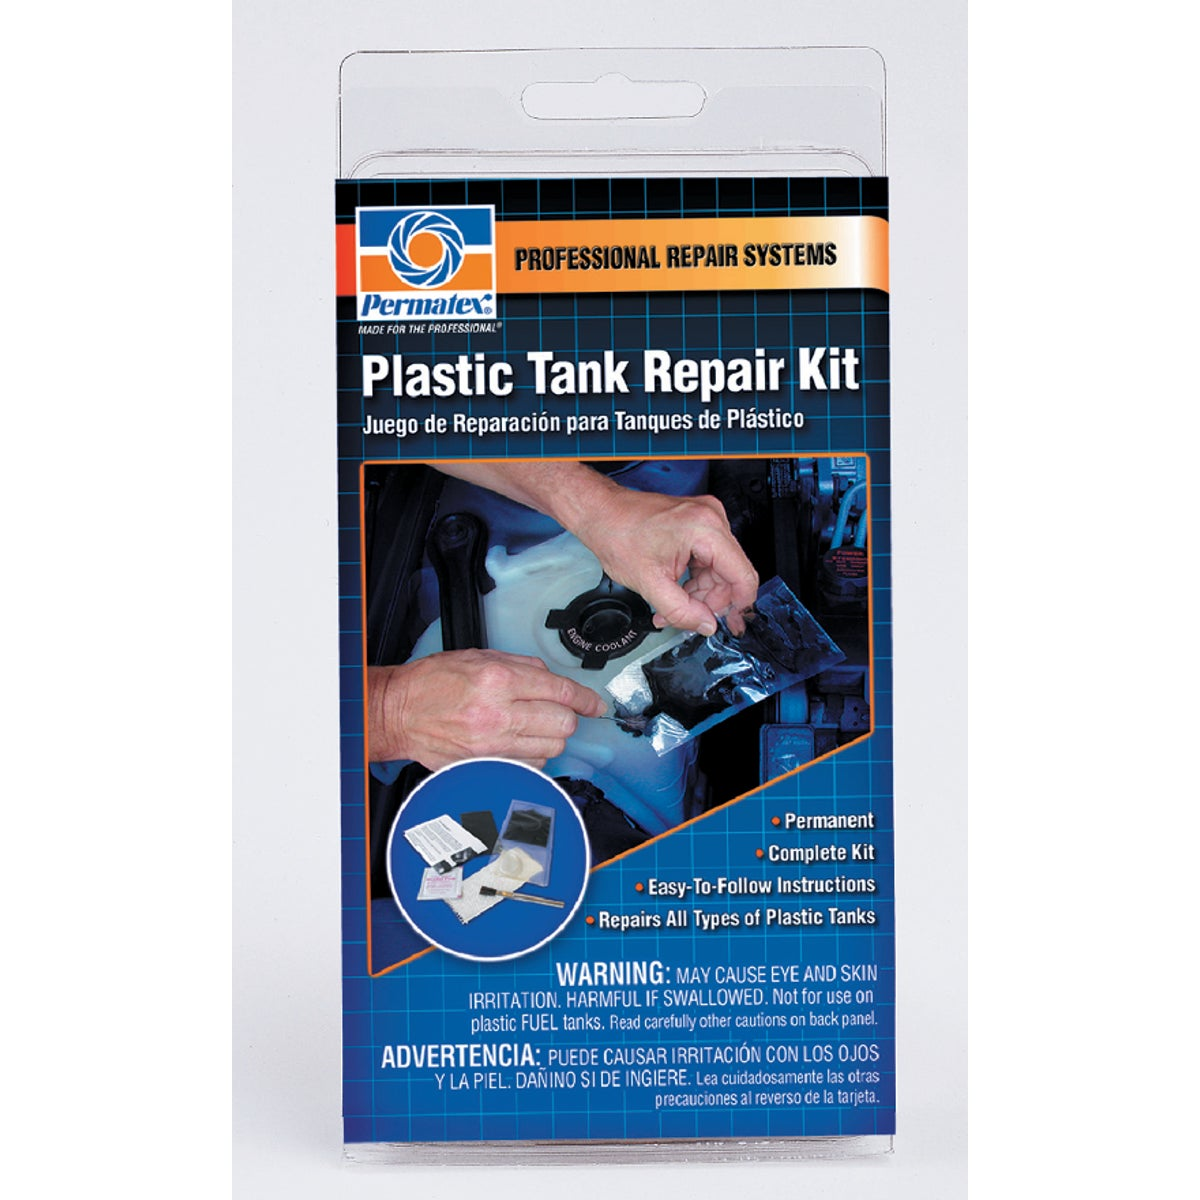 PLASTIC TANK REPAIR KIT - 09100 by Itw Global Brands